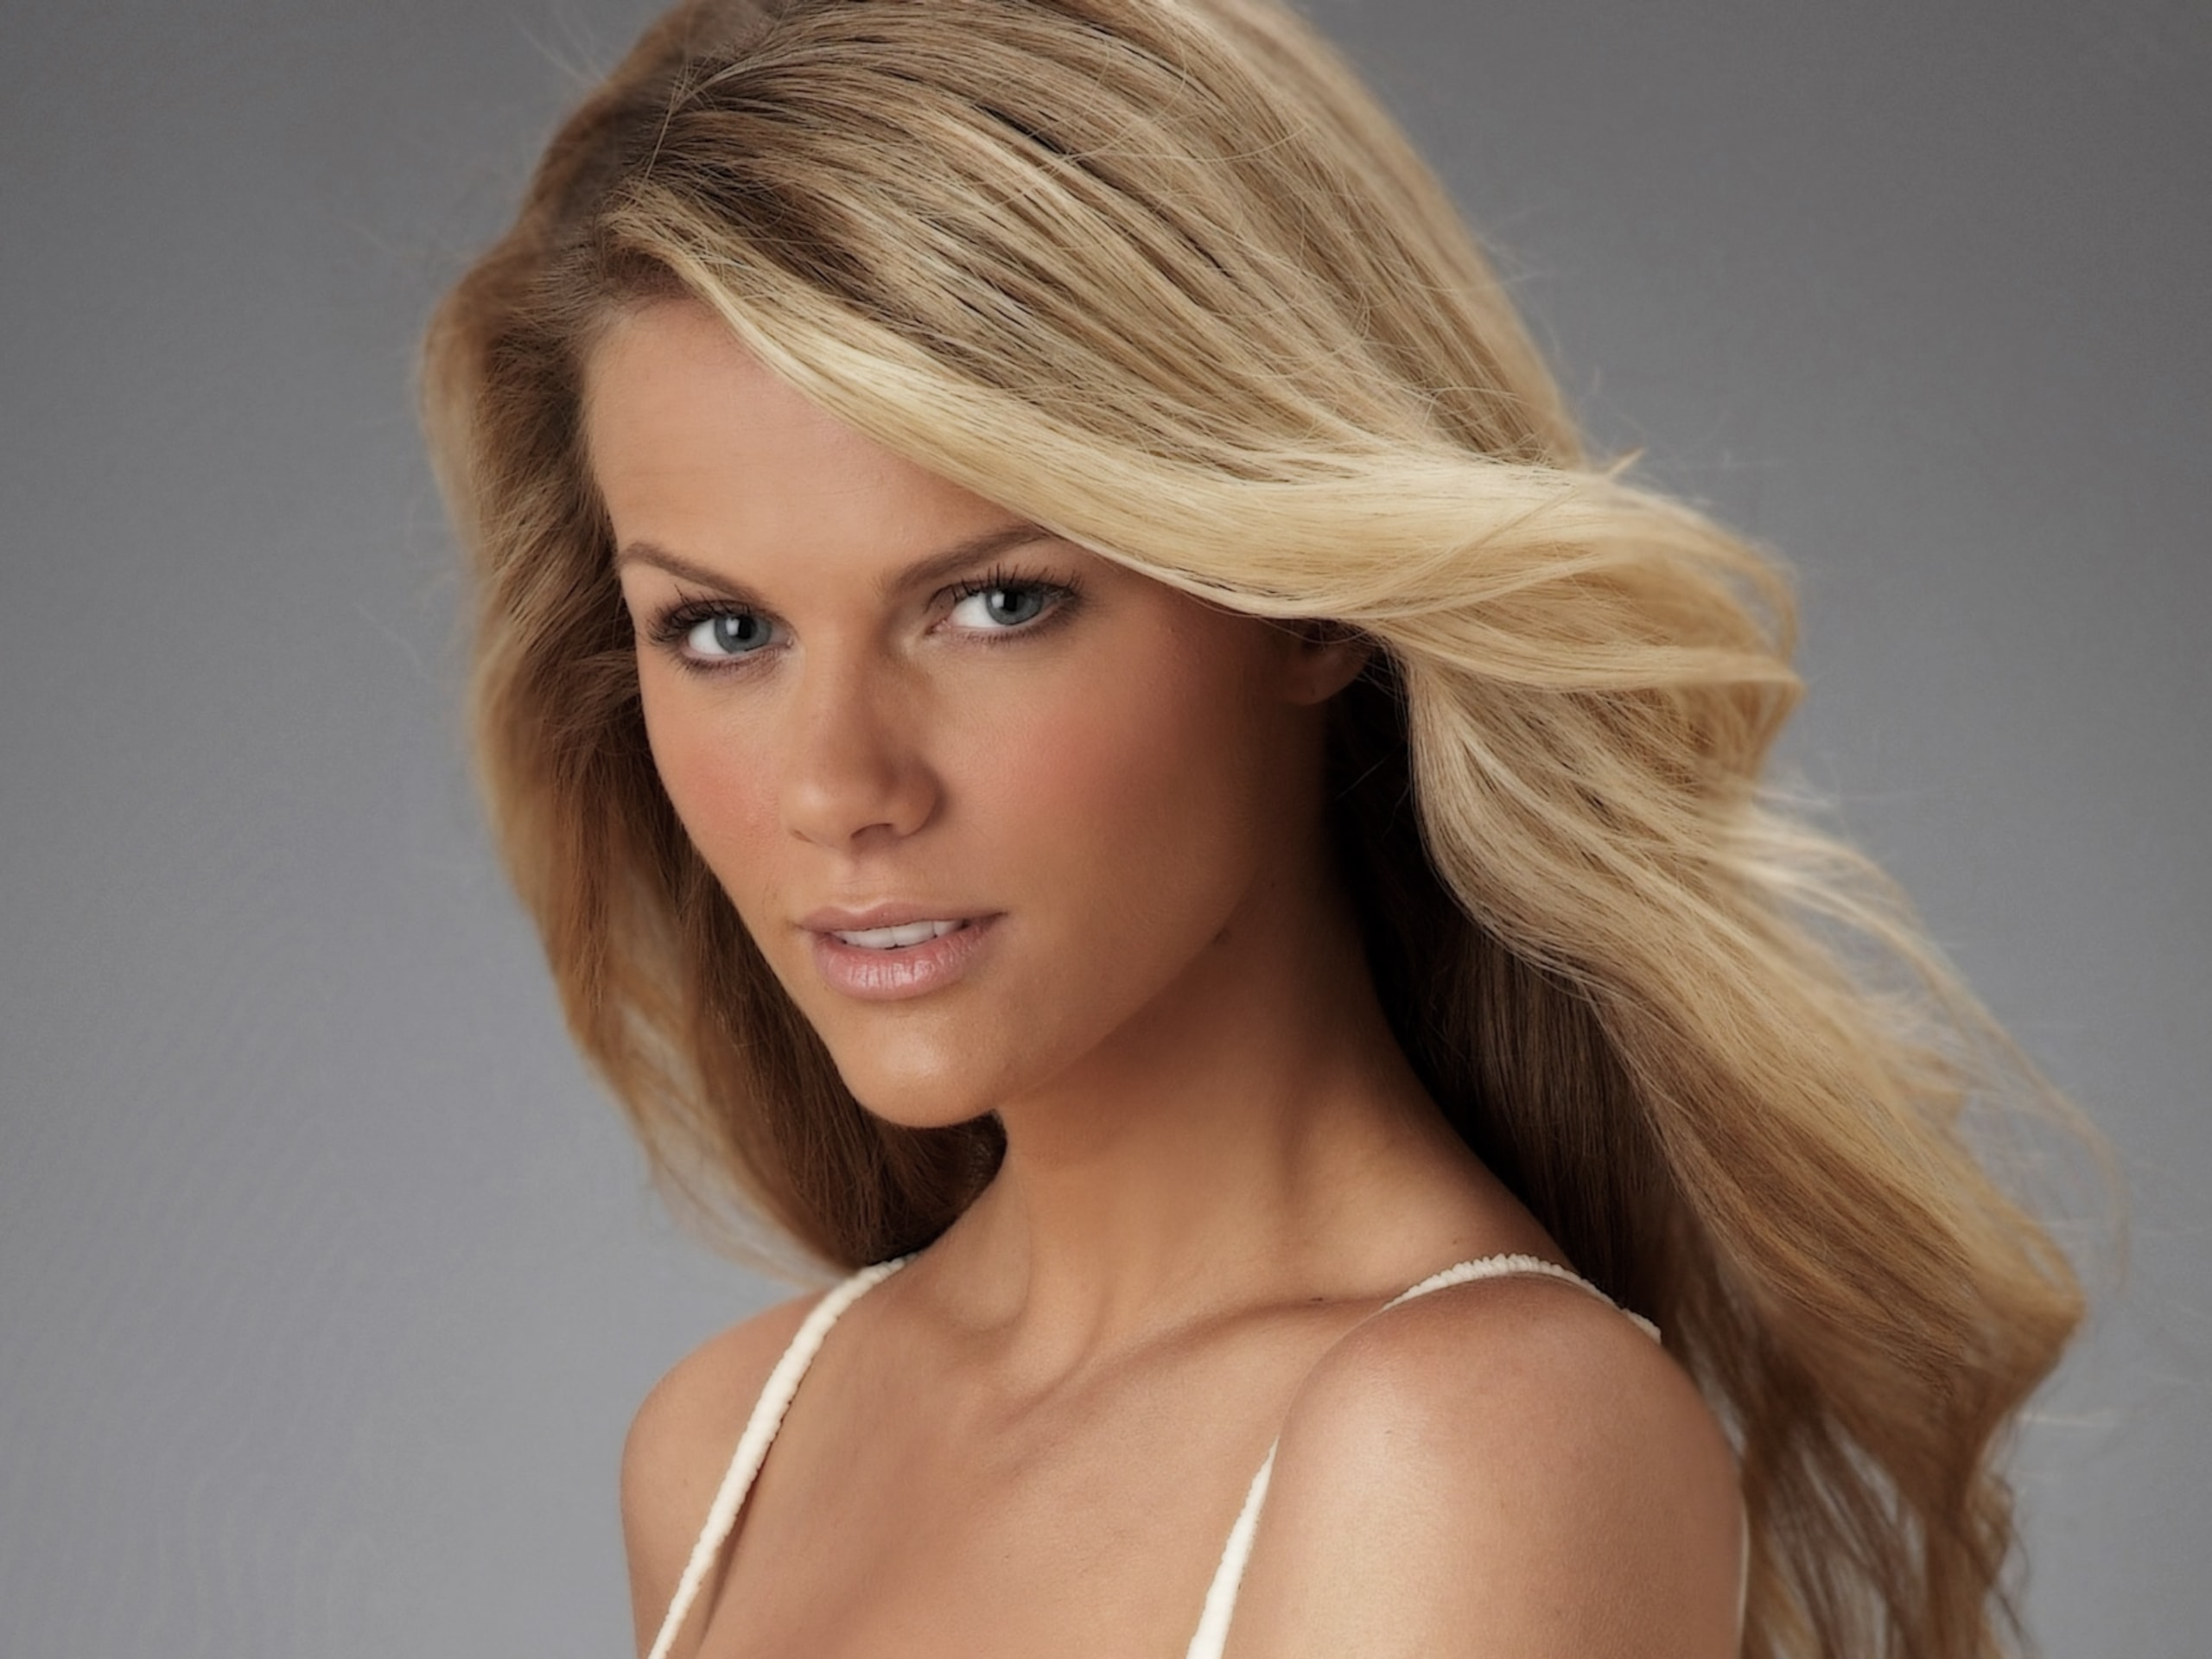 Brooklyn Decker widescreen wallpapers